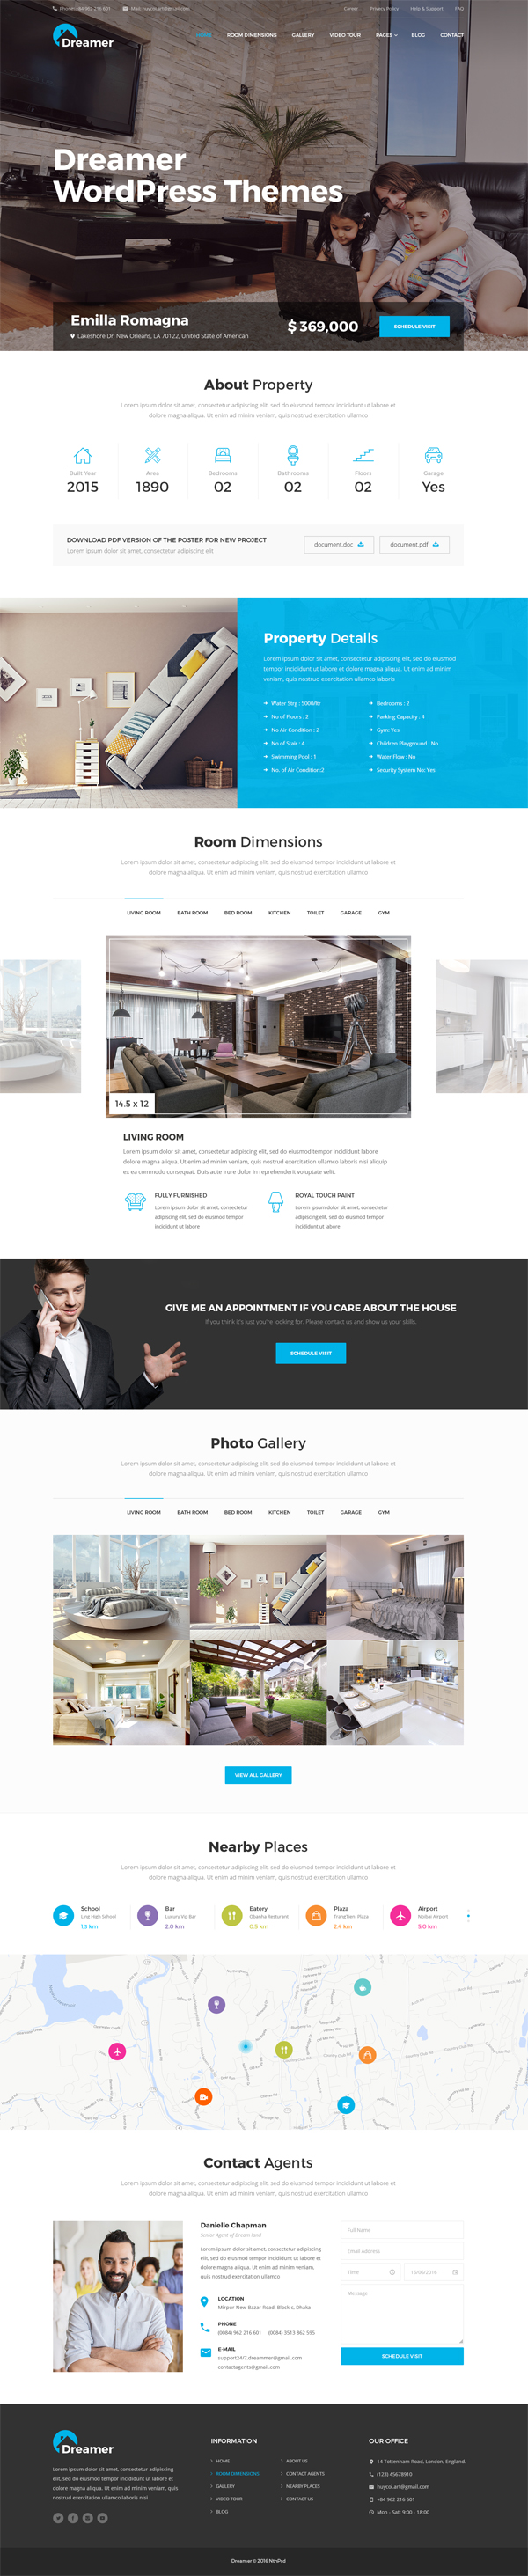 Dreamer - Single Property PSD Templates